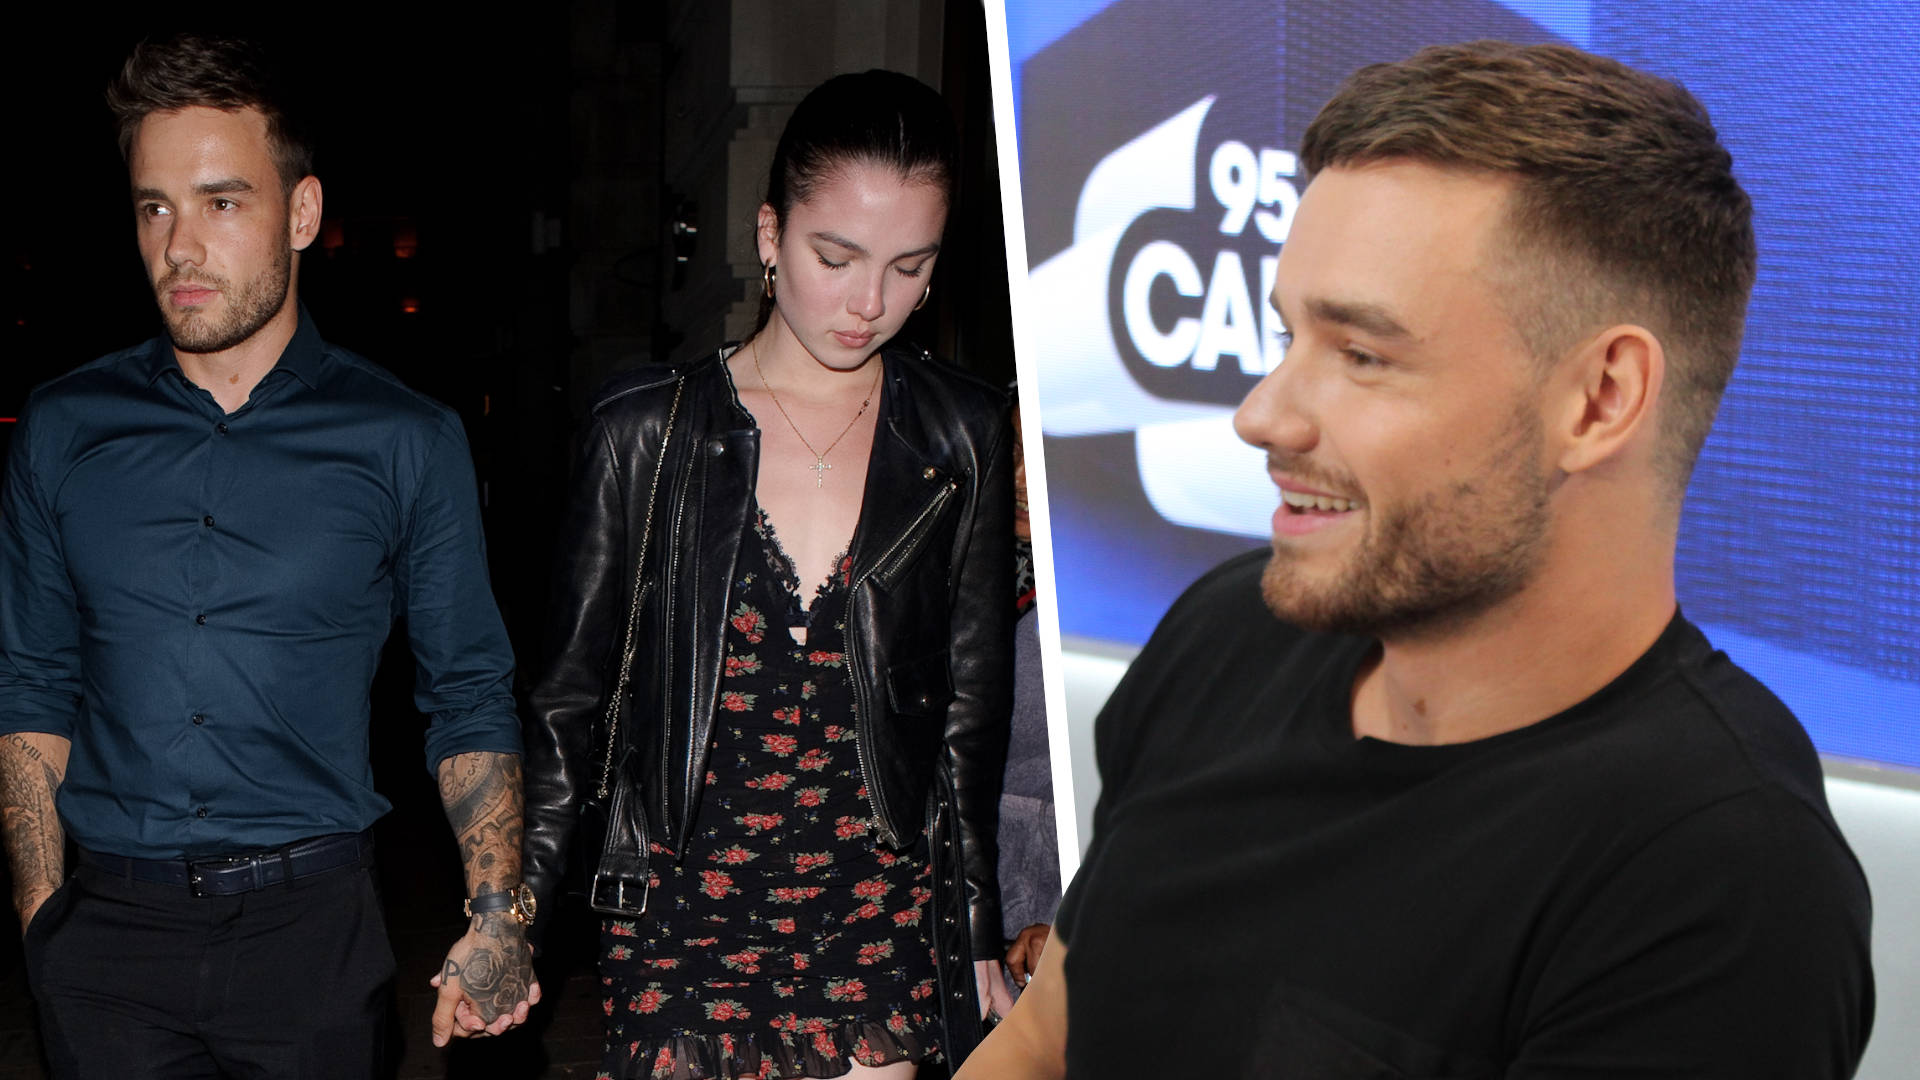 WATCH: Liam Payne Discusses His Happiness With New Girlfriend, Maya Henry